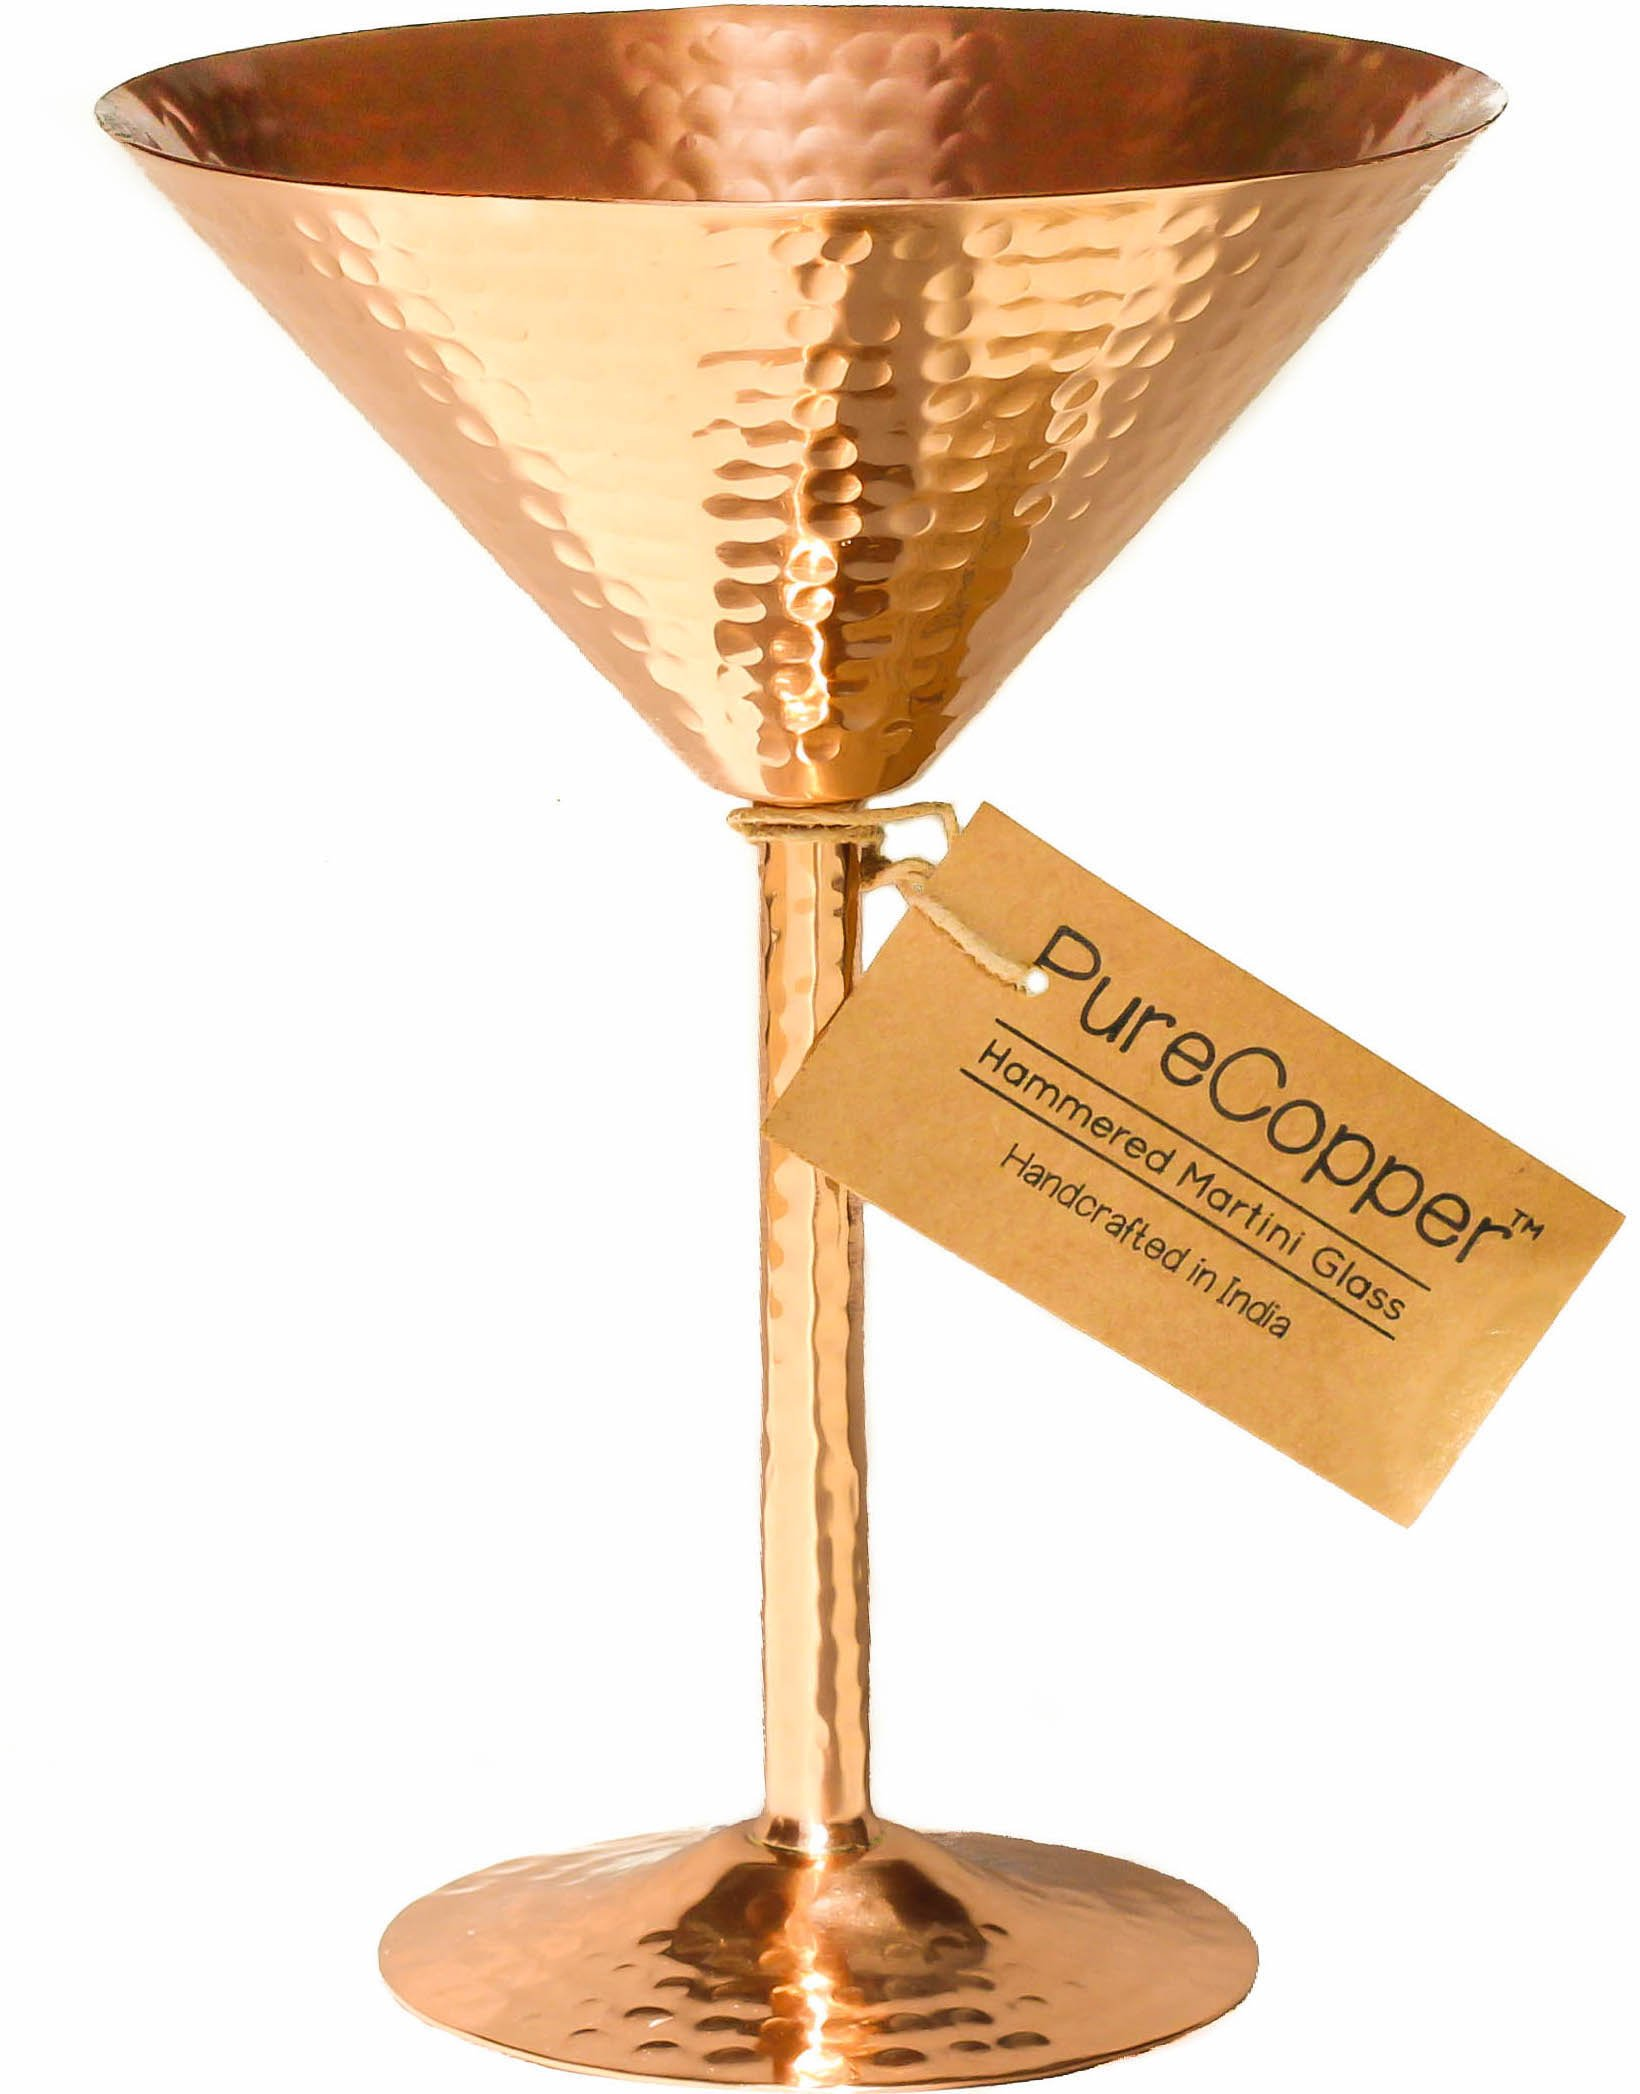 Solid Copper Martini Glass - 100% Copper, Beautifully Hand-Hammered Artisanal Barware - 10oz (1, Hammered Copper)